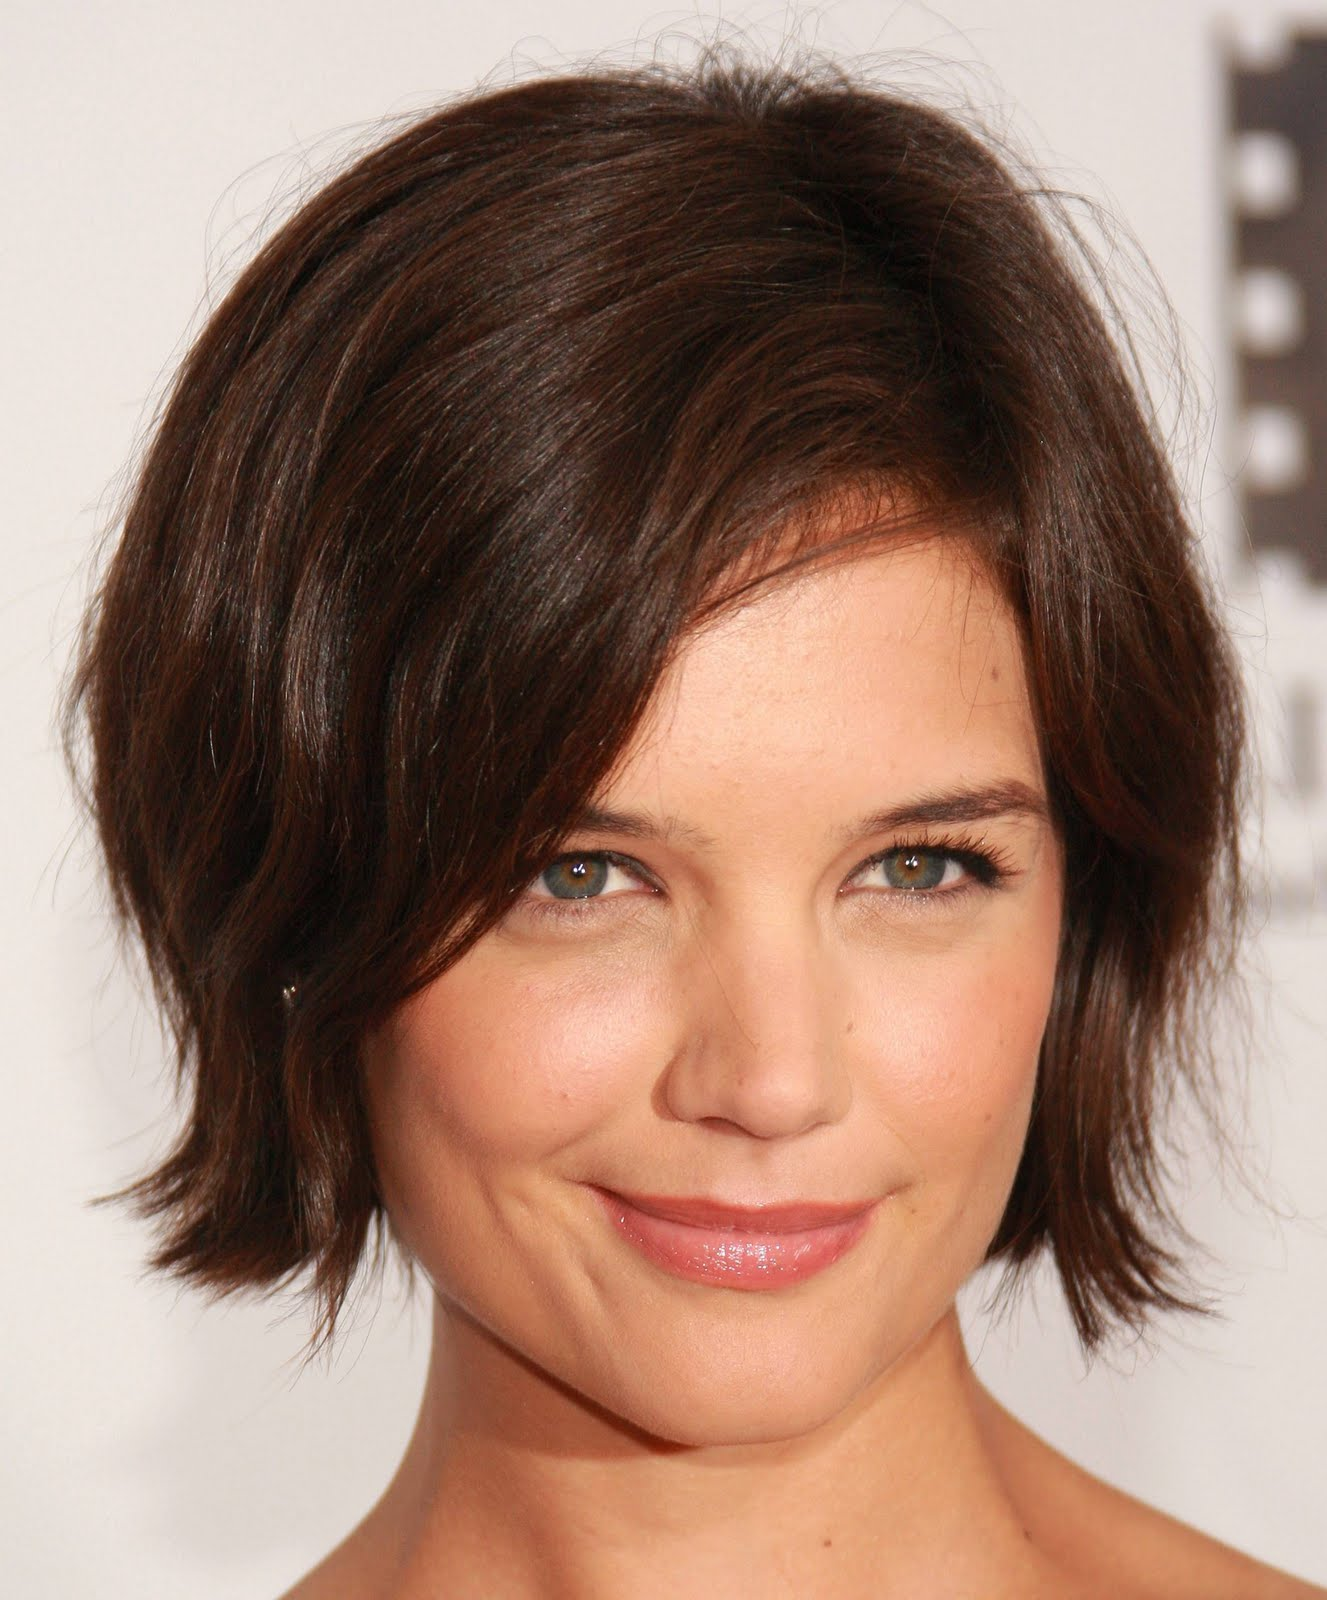 Trendy Short Hairstyles Of 2011 - Samuel Blog: Trendy Short Hairstyles